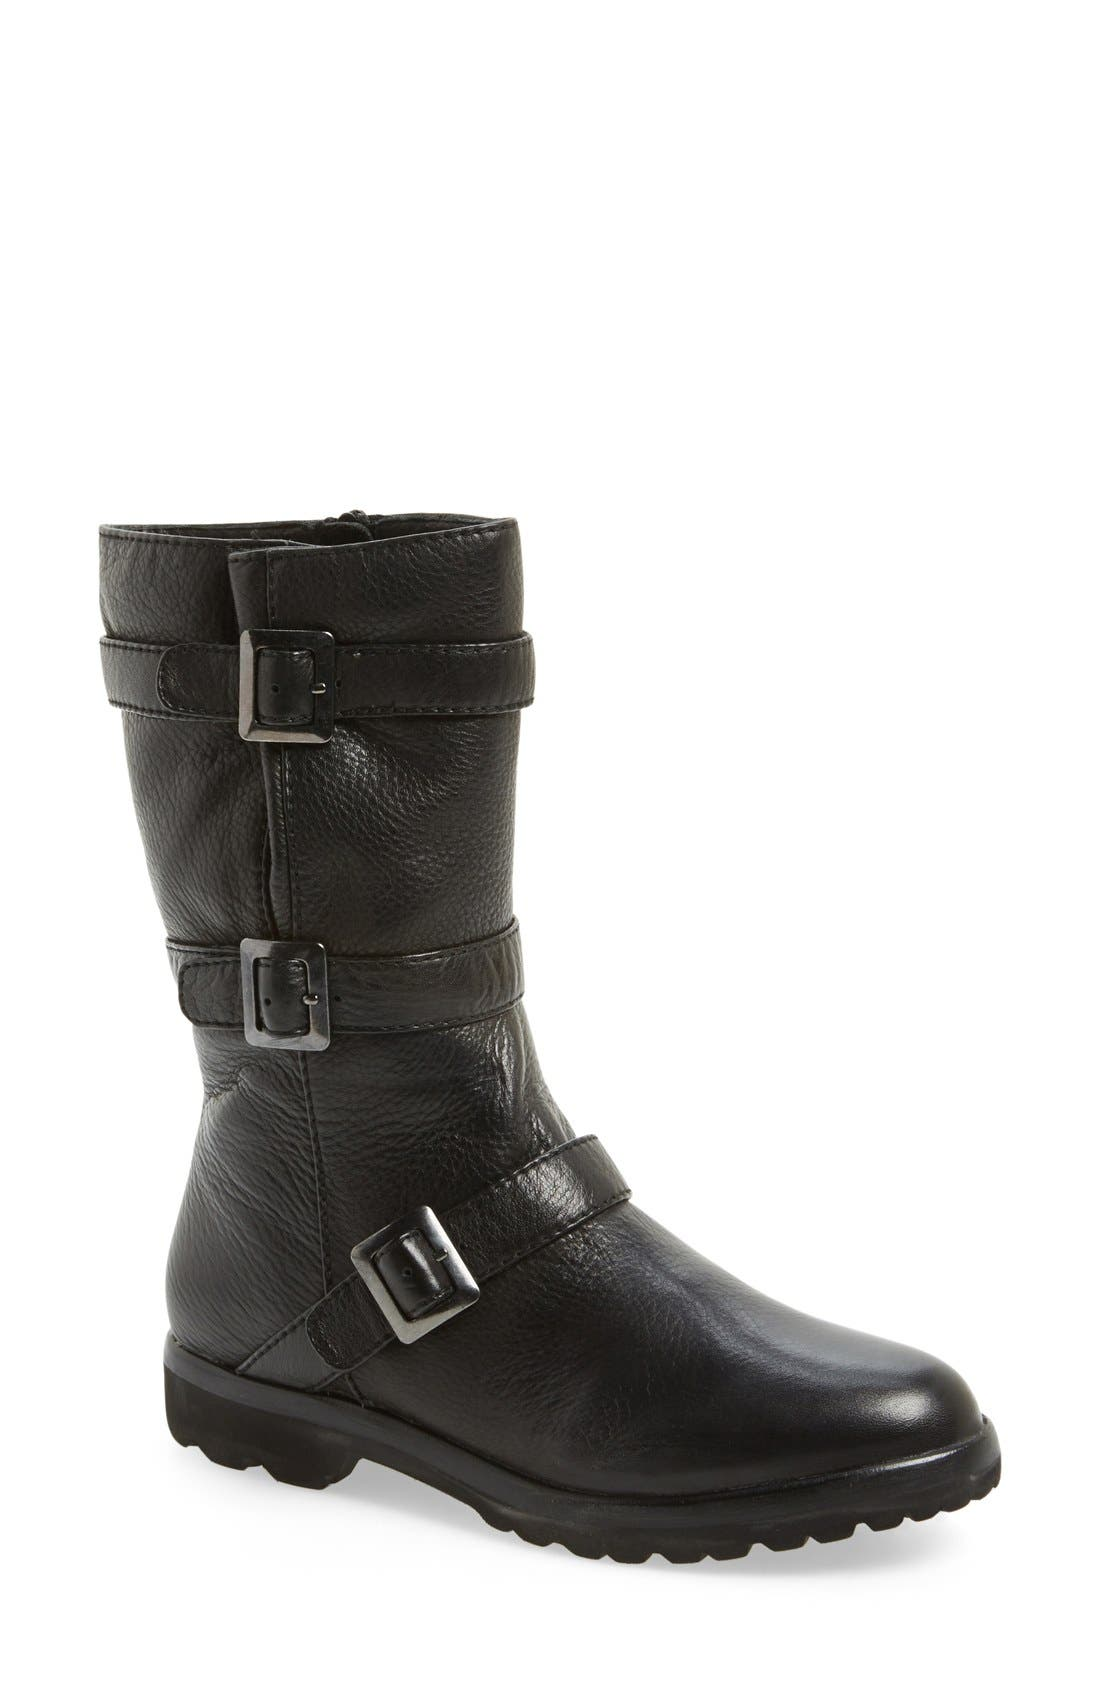 L'Amour Des Pieds 'Racey' Belted Mid Boot,                         Main,                         color, 001